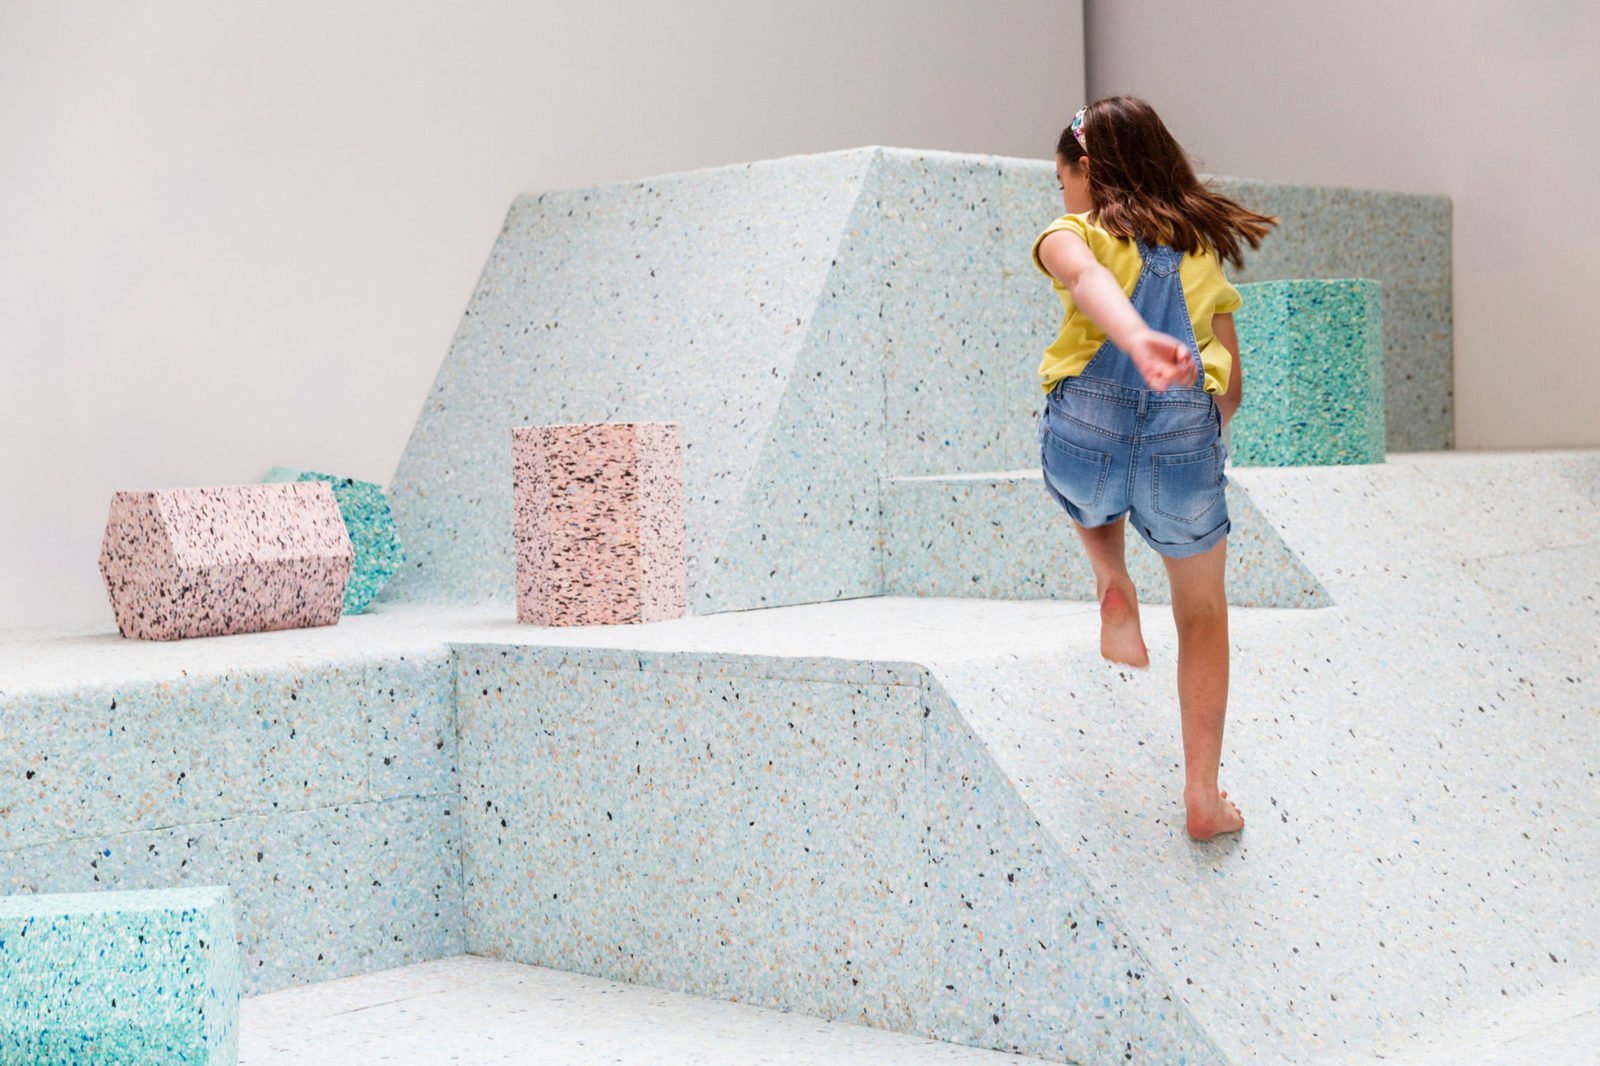 (EN) The Brutalist Playground, 2015: Assemble worked in collaboration with artist Simon Terrill to design an immersive installation that recreated a trio of post-war play structures out of foam.